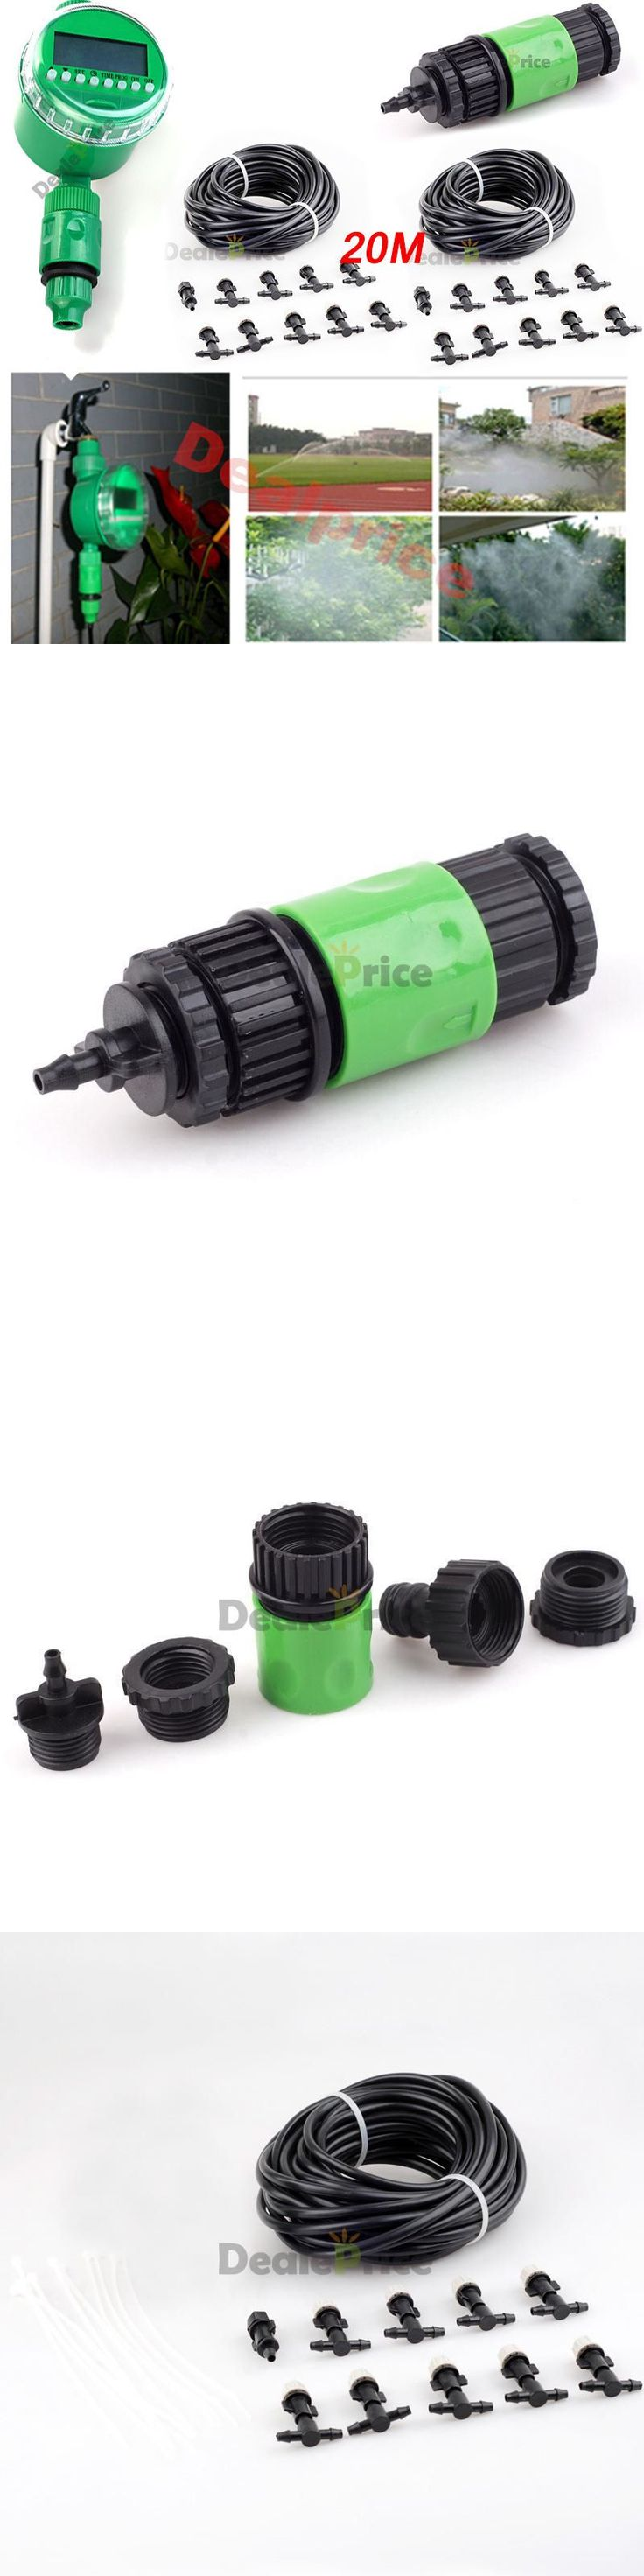 Hose Nozzles and Wands 181015: 20M Hose Automatic Misting Cooling System Watering Irrigation Lcd Timer Kit -> BUY IT NOW ONLY: $38.95 on eBay!